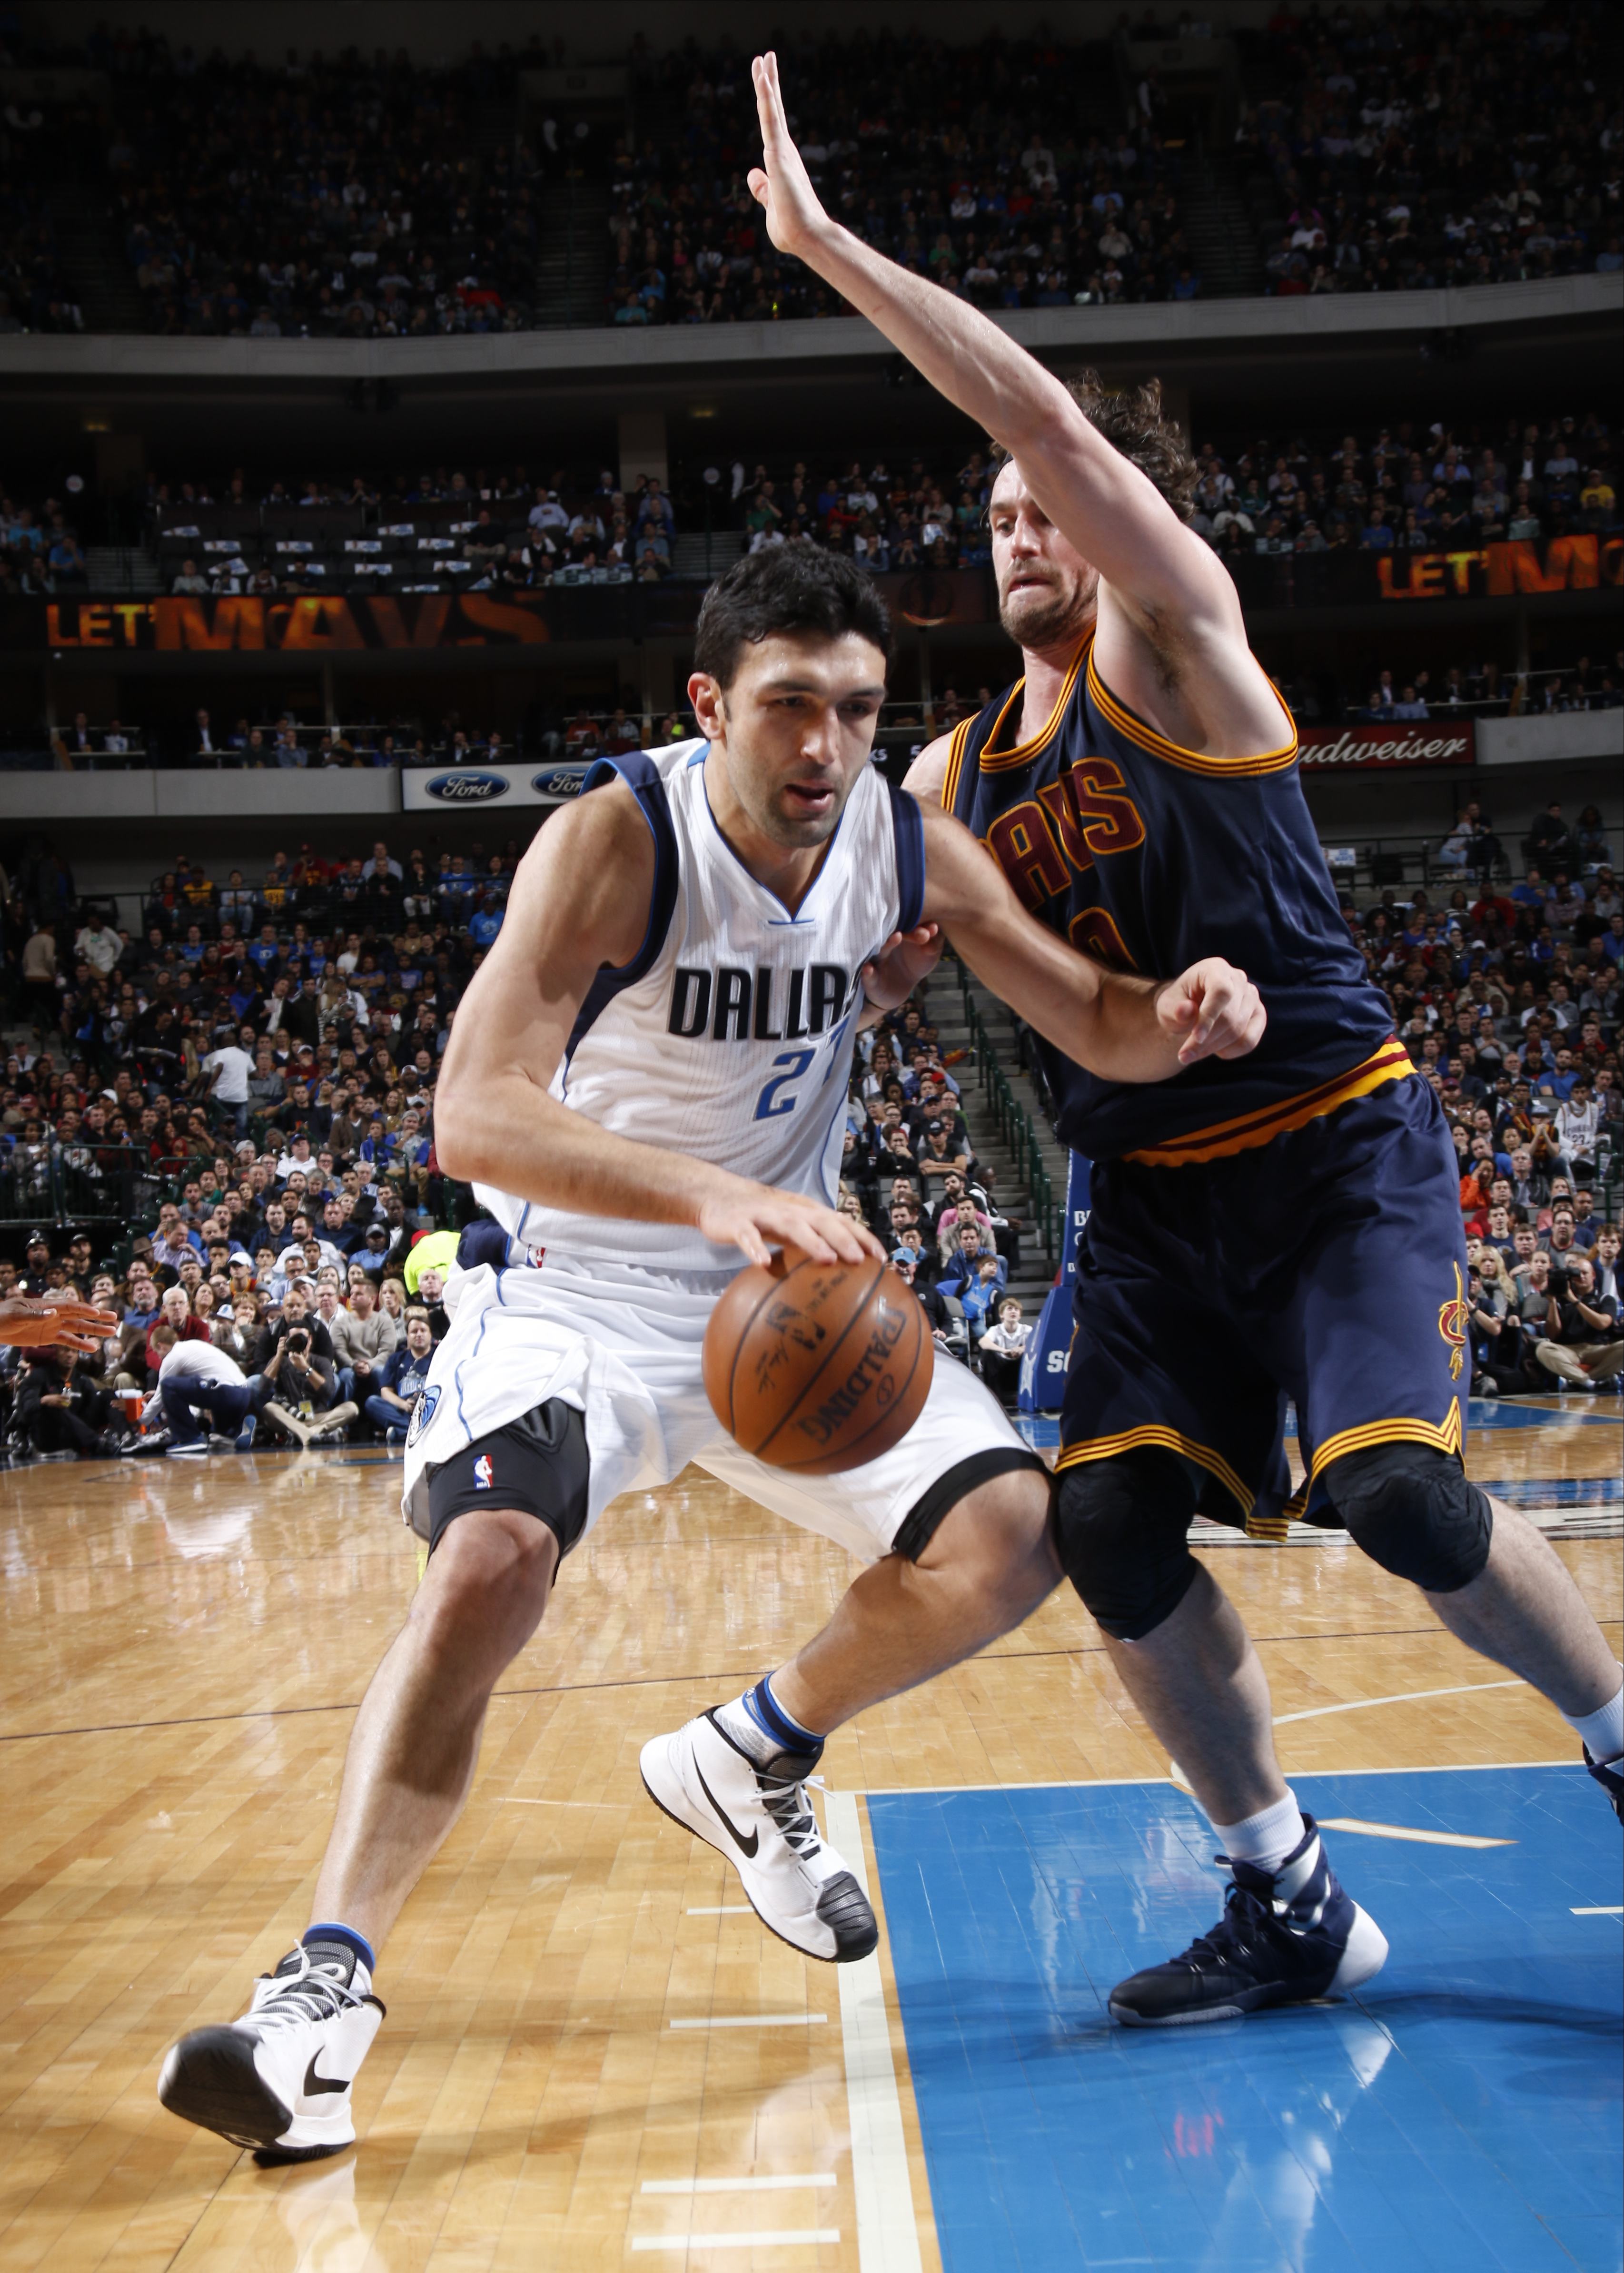 DALLAS, TX - JANUARY 12: Zaza Pachulia #27 of the Dallas Mavericks handles the ball against Kevin Love #0 of the Cleveland Cavaliers on January 12, 2016 at the American Airlines Center in Dallas, Texas. (Photo by Glenn James/NBAE via Getty Images)